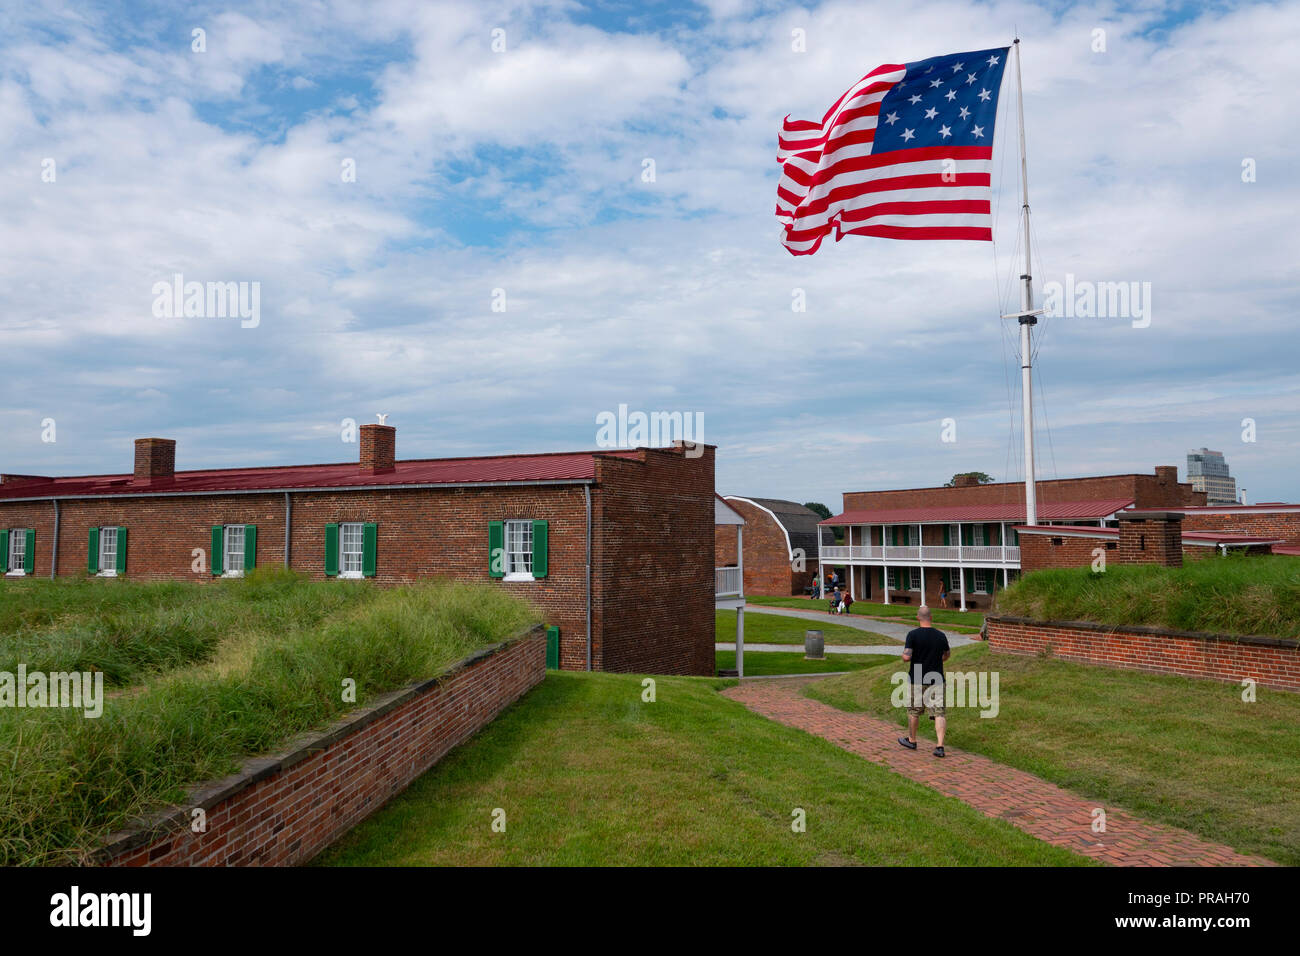 USA Maryland MD Baltimore Fort McHenry National Monument 15 star flags flies replica of the flag that flew during the battle the Francis Scott Key saw - Stock Image